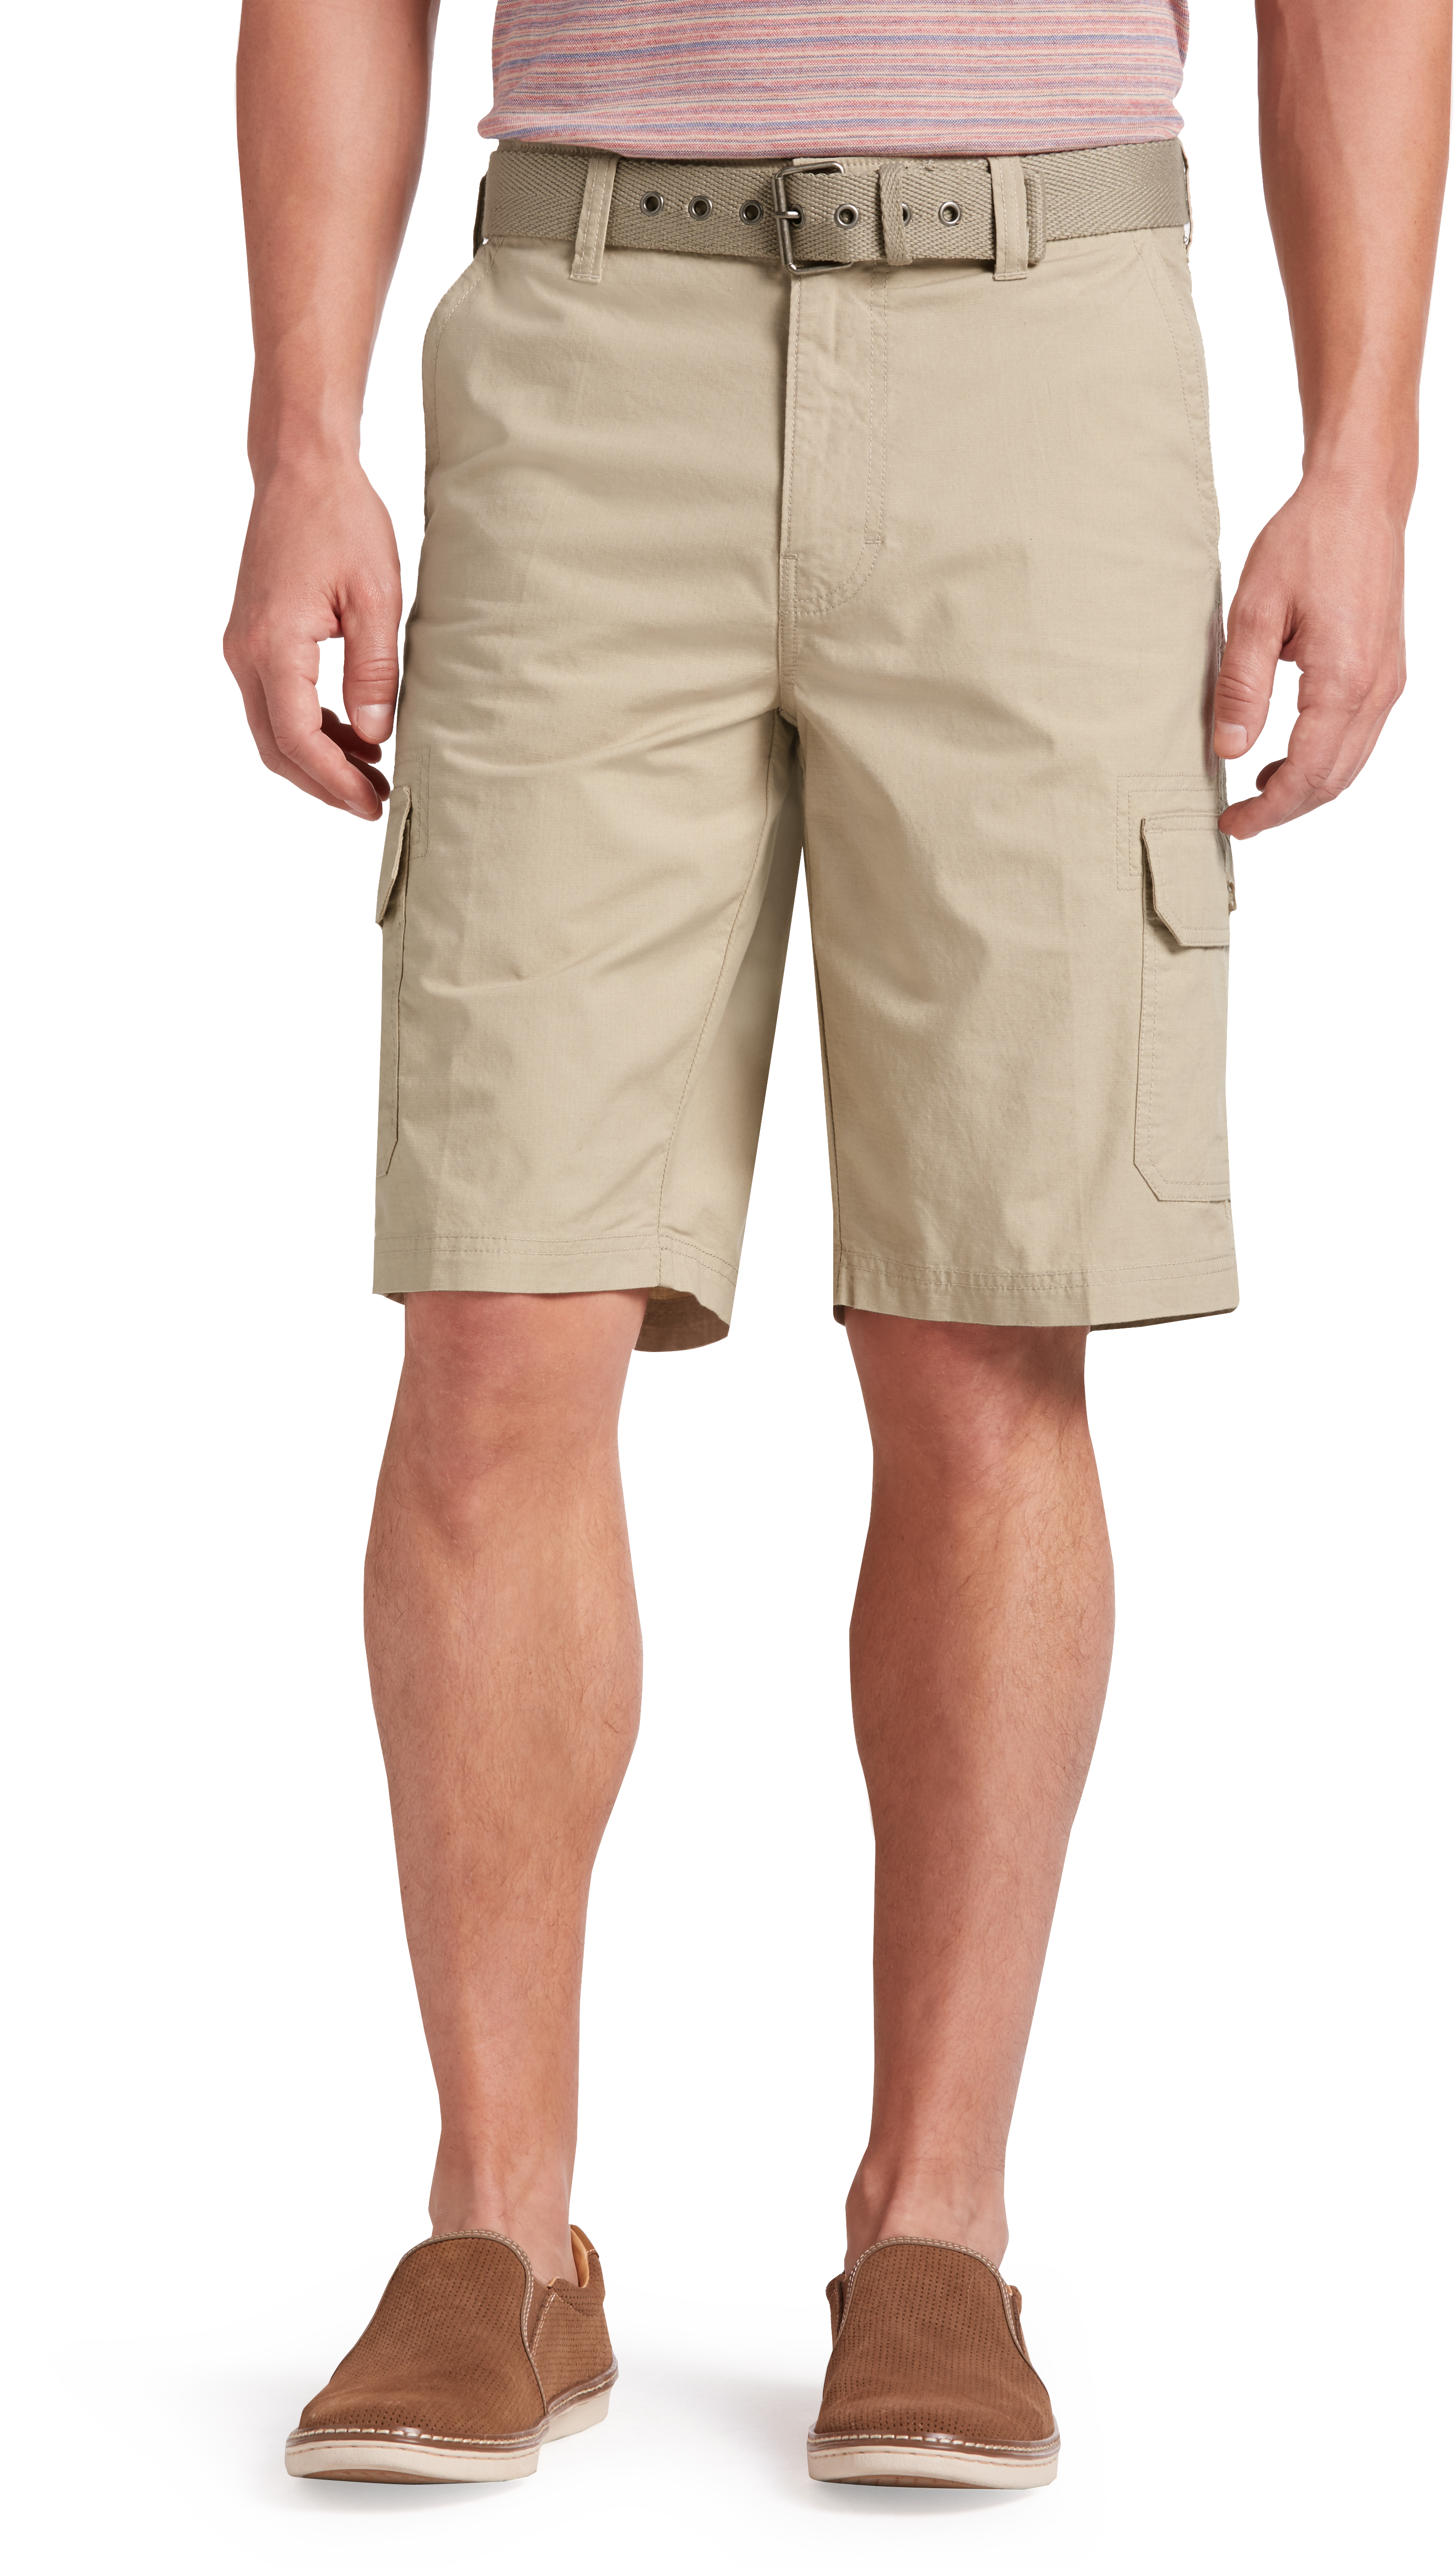 d065118bb1 Joseph Abboud Tailored Fit Rip-Stop Cargo Shorts CLEARANCE - All ...